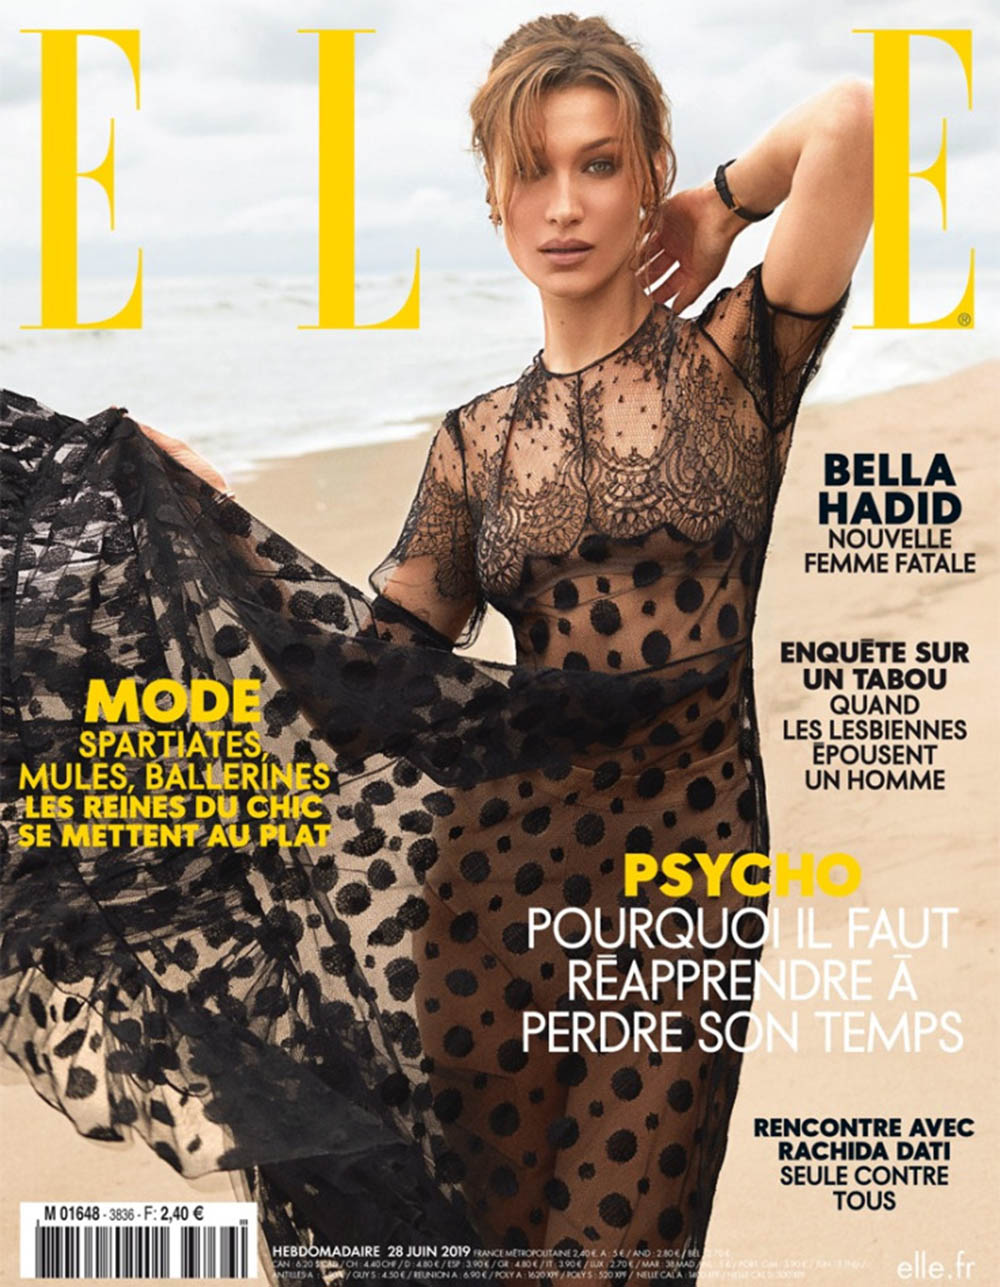 Bella Hadid covers Elle France June 28th, 2019 by Zoey Grossman